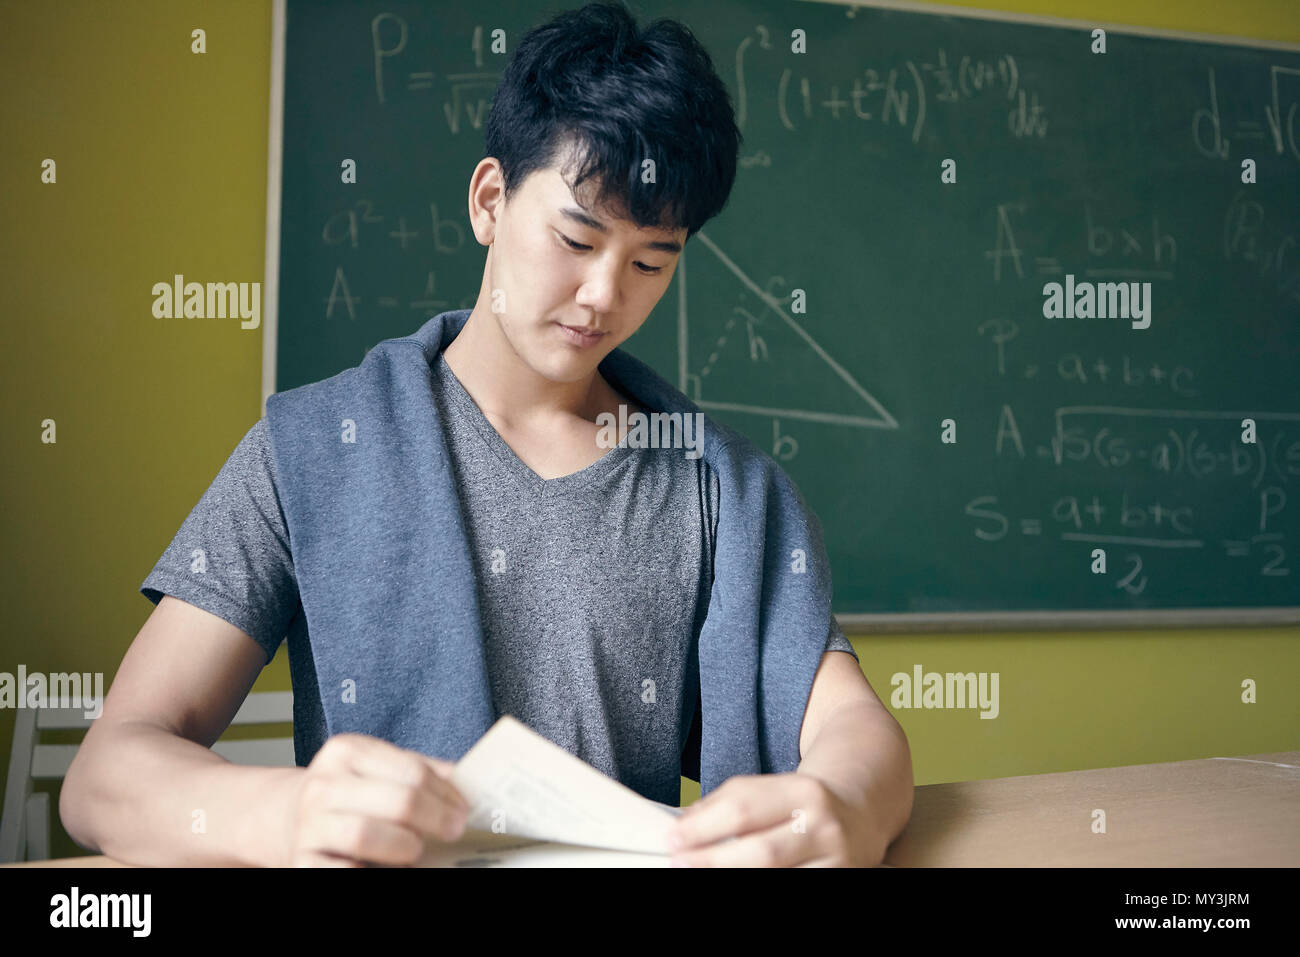 Young man studying in math class - Stock Image